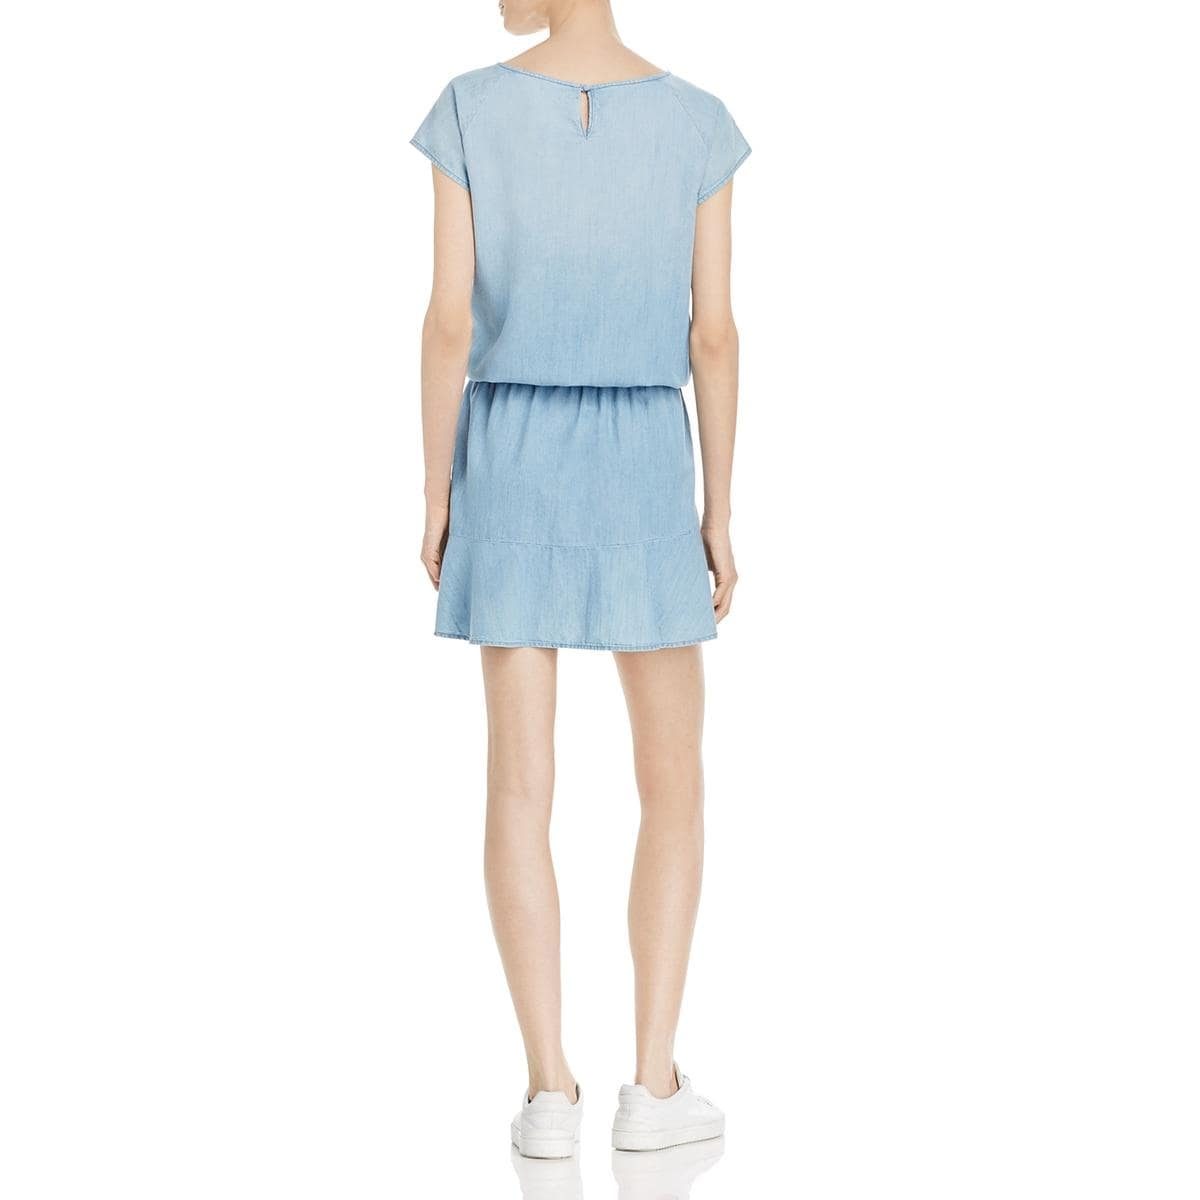 8c15661b558 Shop Soft Joie Womens Quora Casual Dress Chambray A-Line - Free Shipping On  Orders Over  45 - Overstock - 22389675